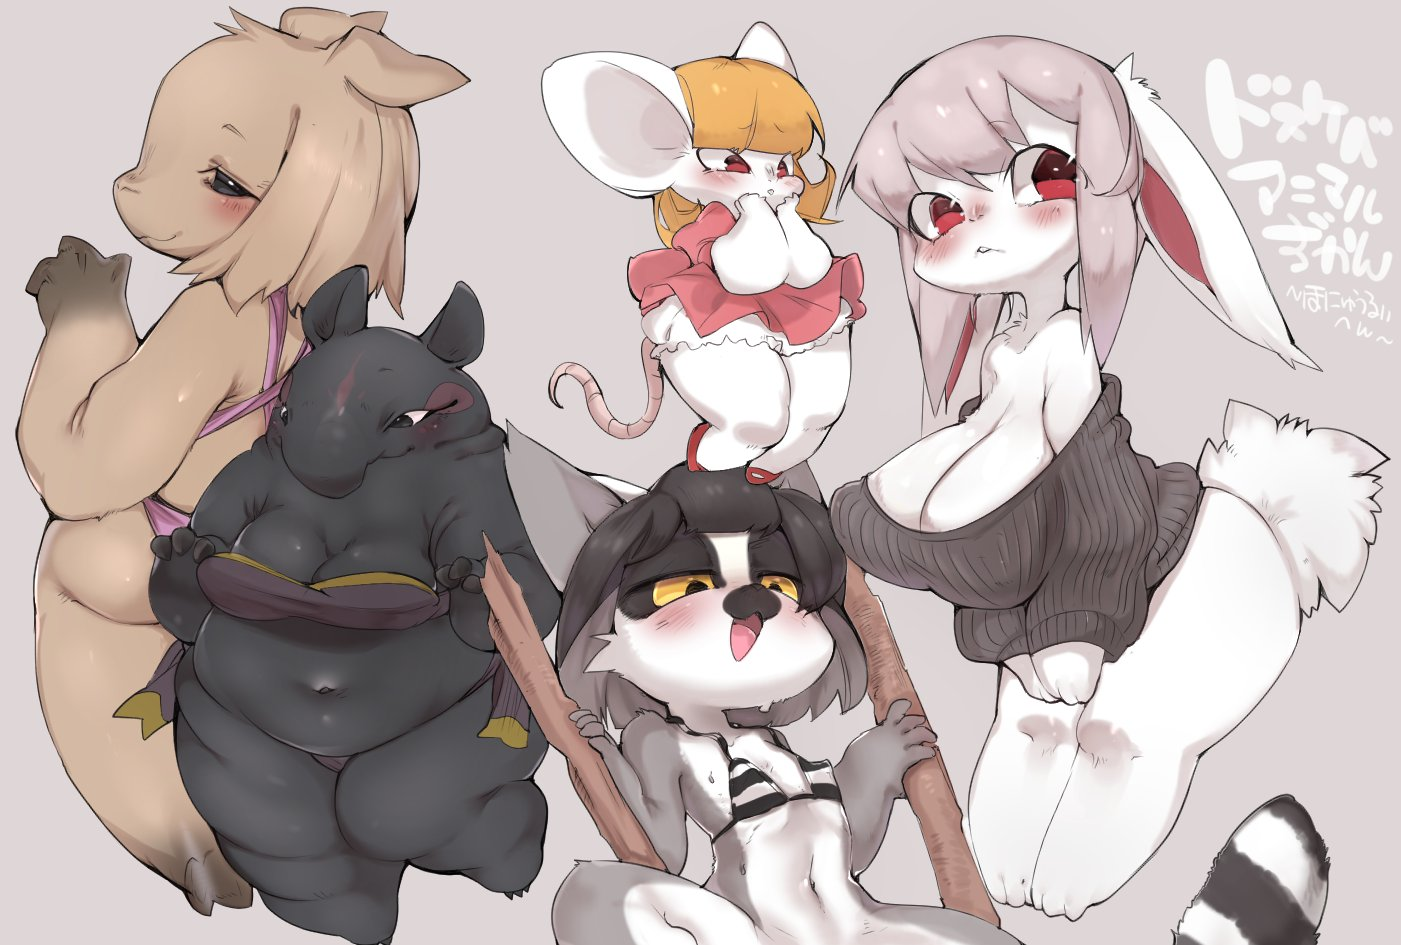 e926 9999gpera anthro big_breasts bikini black_body black_hair blonde_hair blush breasts cleavage clothed clothing dress eyelashes female fur grey_background grey_fur grey_hair hair japanese_text lagomorph lemur mammal mouse multiple_images open_mouth overweight overweight_female primate rabbit red_eyes rodent simple_background solo sweater swimsuit tapir text translation_request unknown_species white_fur yellow_eyes